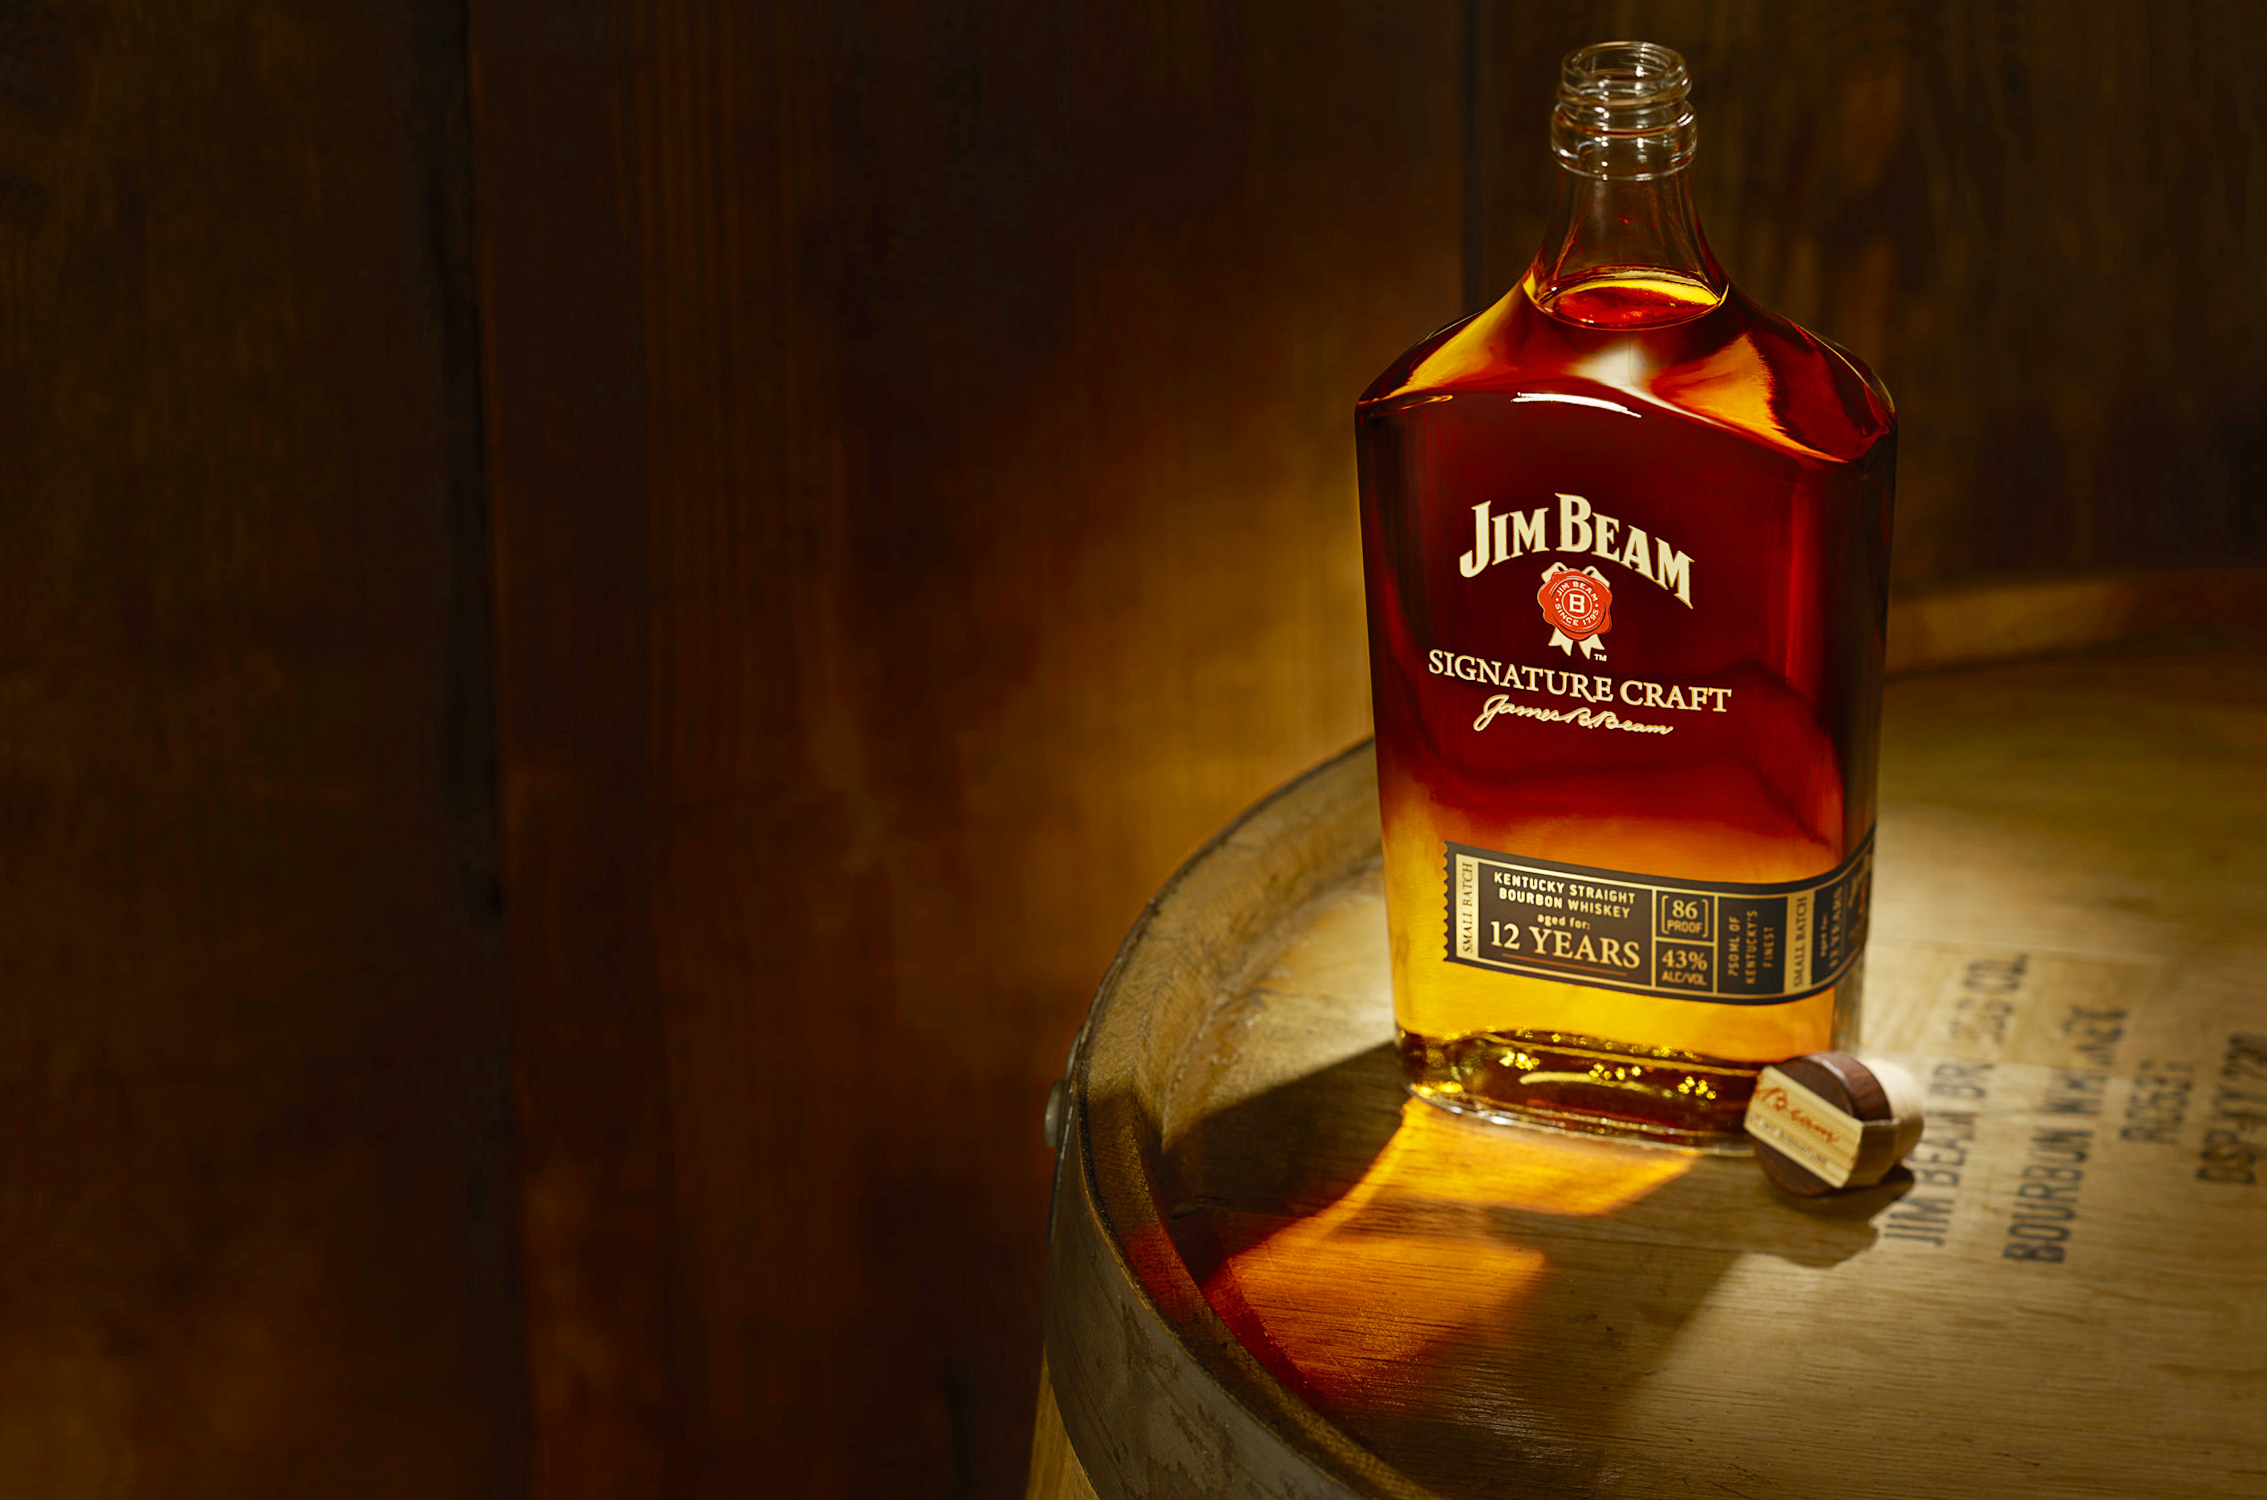 J931_KTO_Jim Beam_Sig_Craft_234_comp_0605_RGB_H1500.jpg